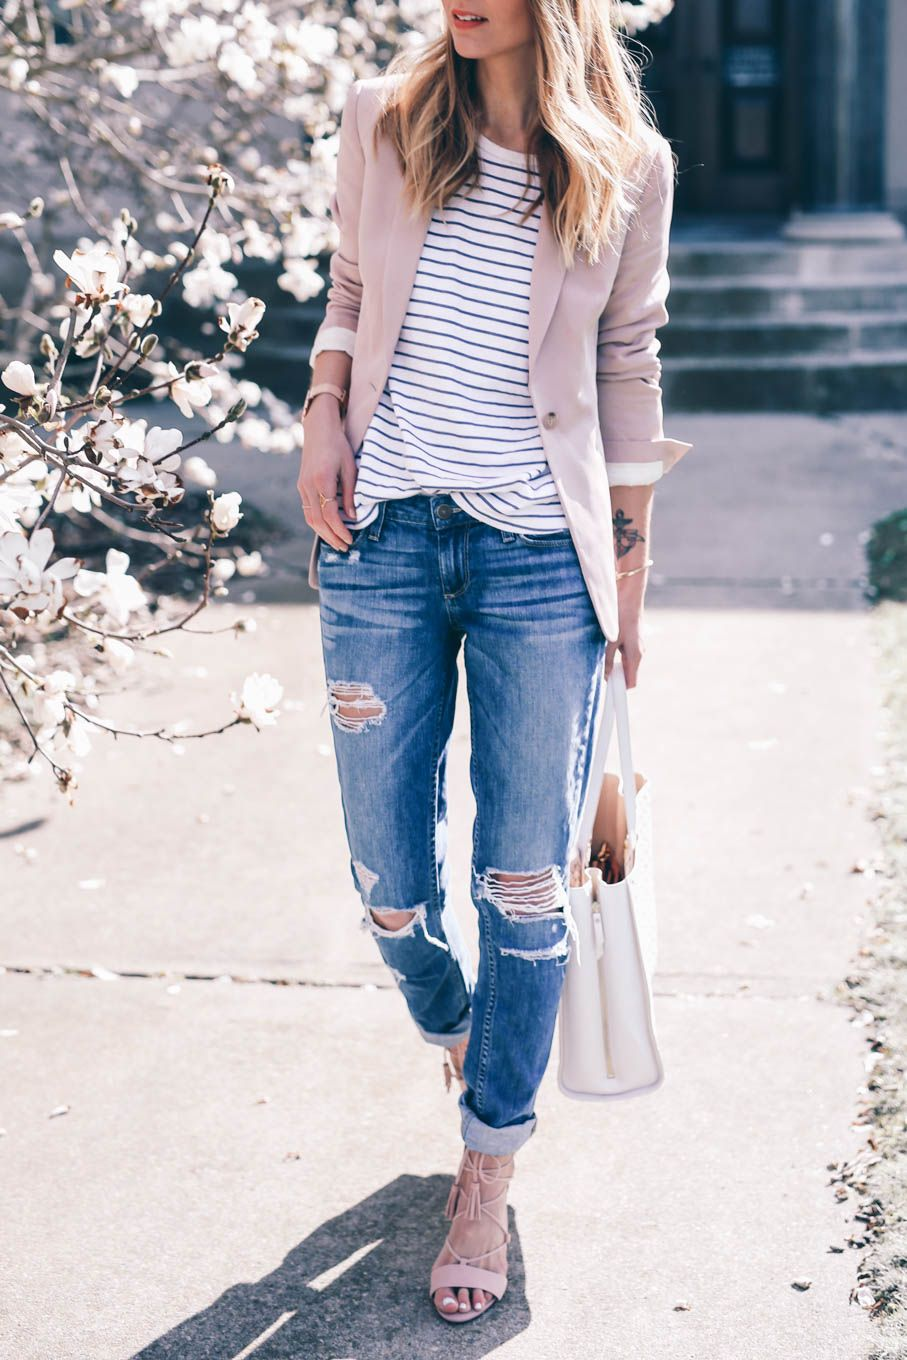 f7e055f98e27a5 blush blazer and boyfriend jeans | OUTFIT INSPO | Fashion, Blush ...